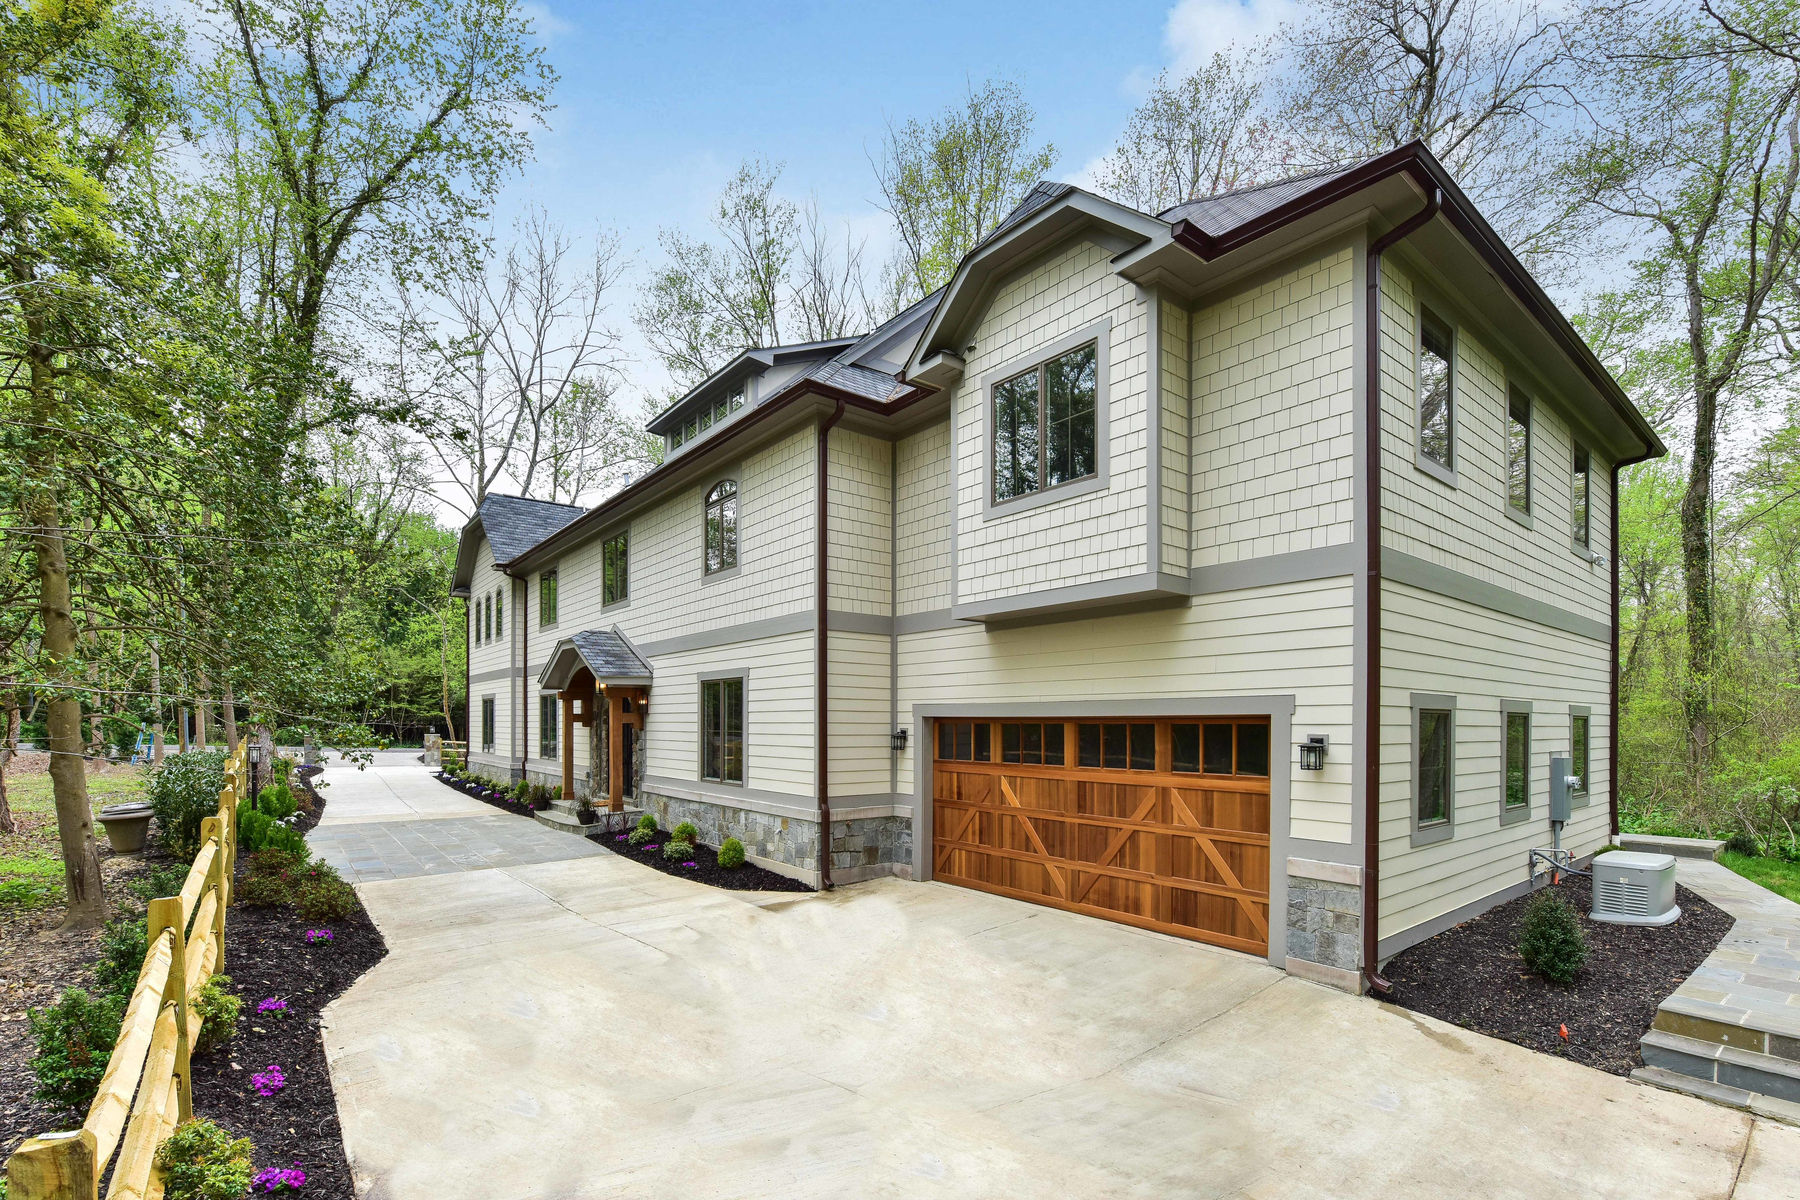 Maison unifamiliale pour l Vente à Langley Forest 6828 Sorrel St McLean, Virginia, 22101 États-Unis